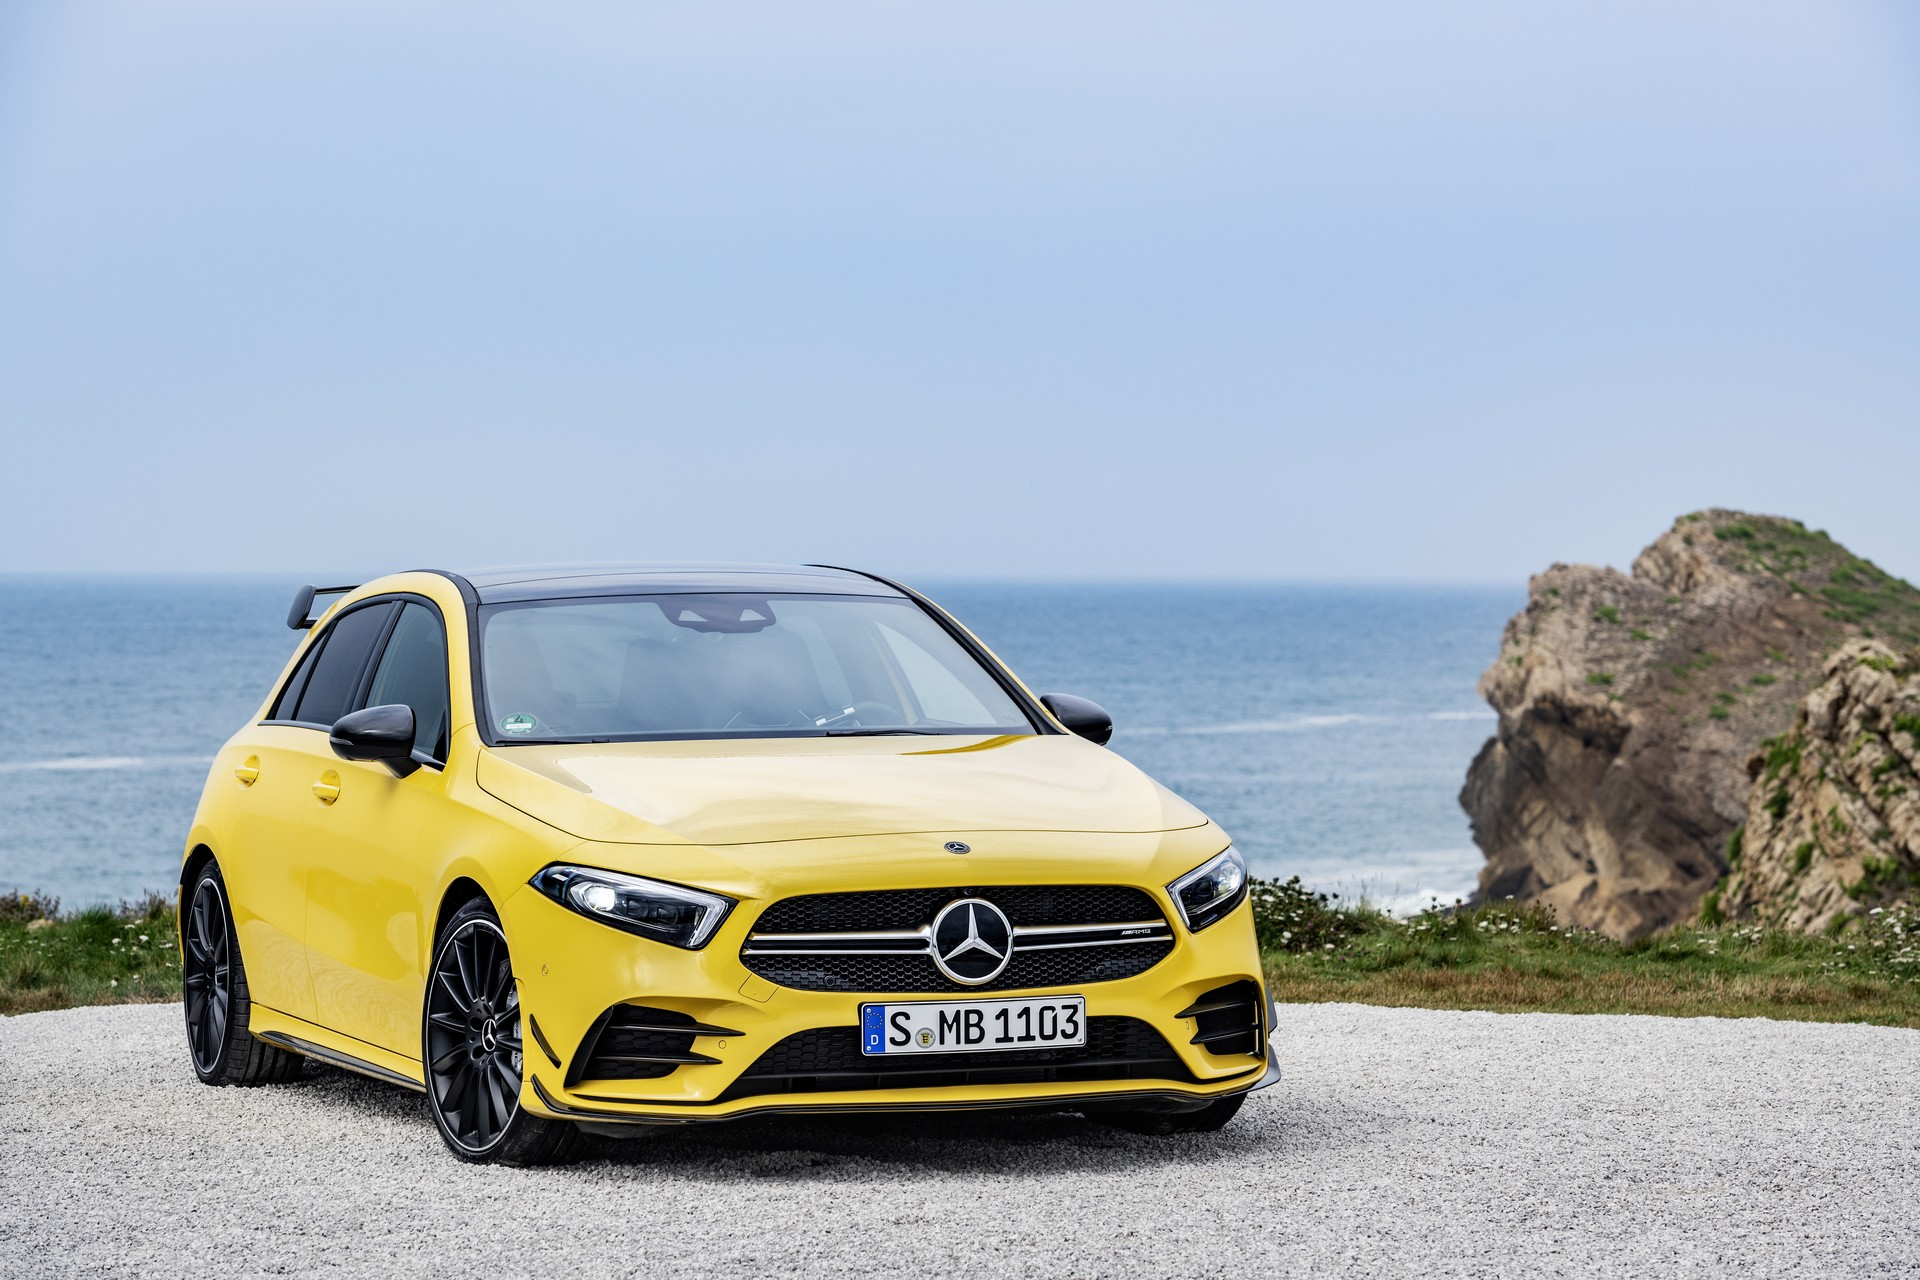 Mercedes A35 4MATIC AMG 2019